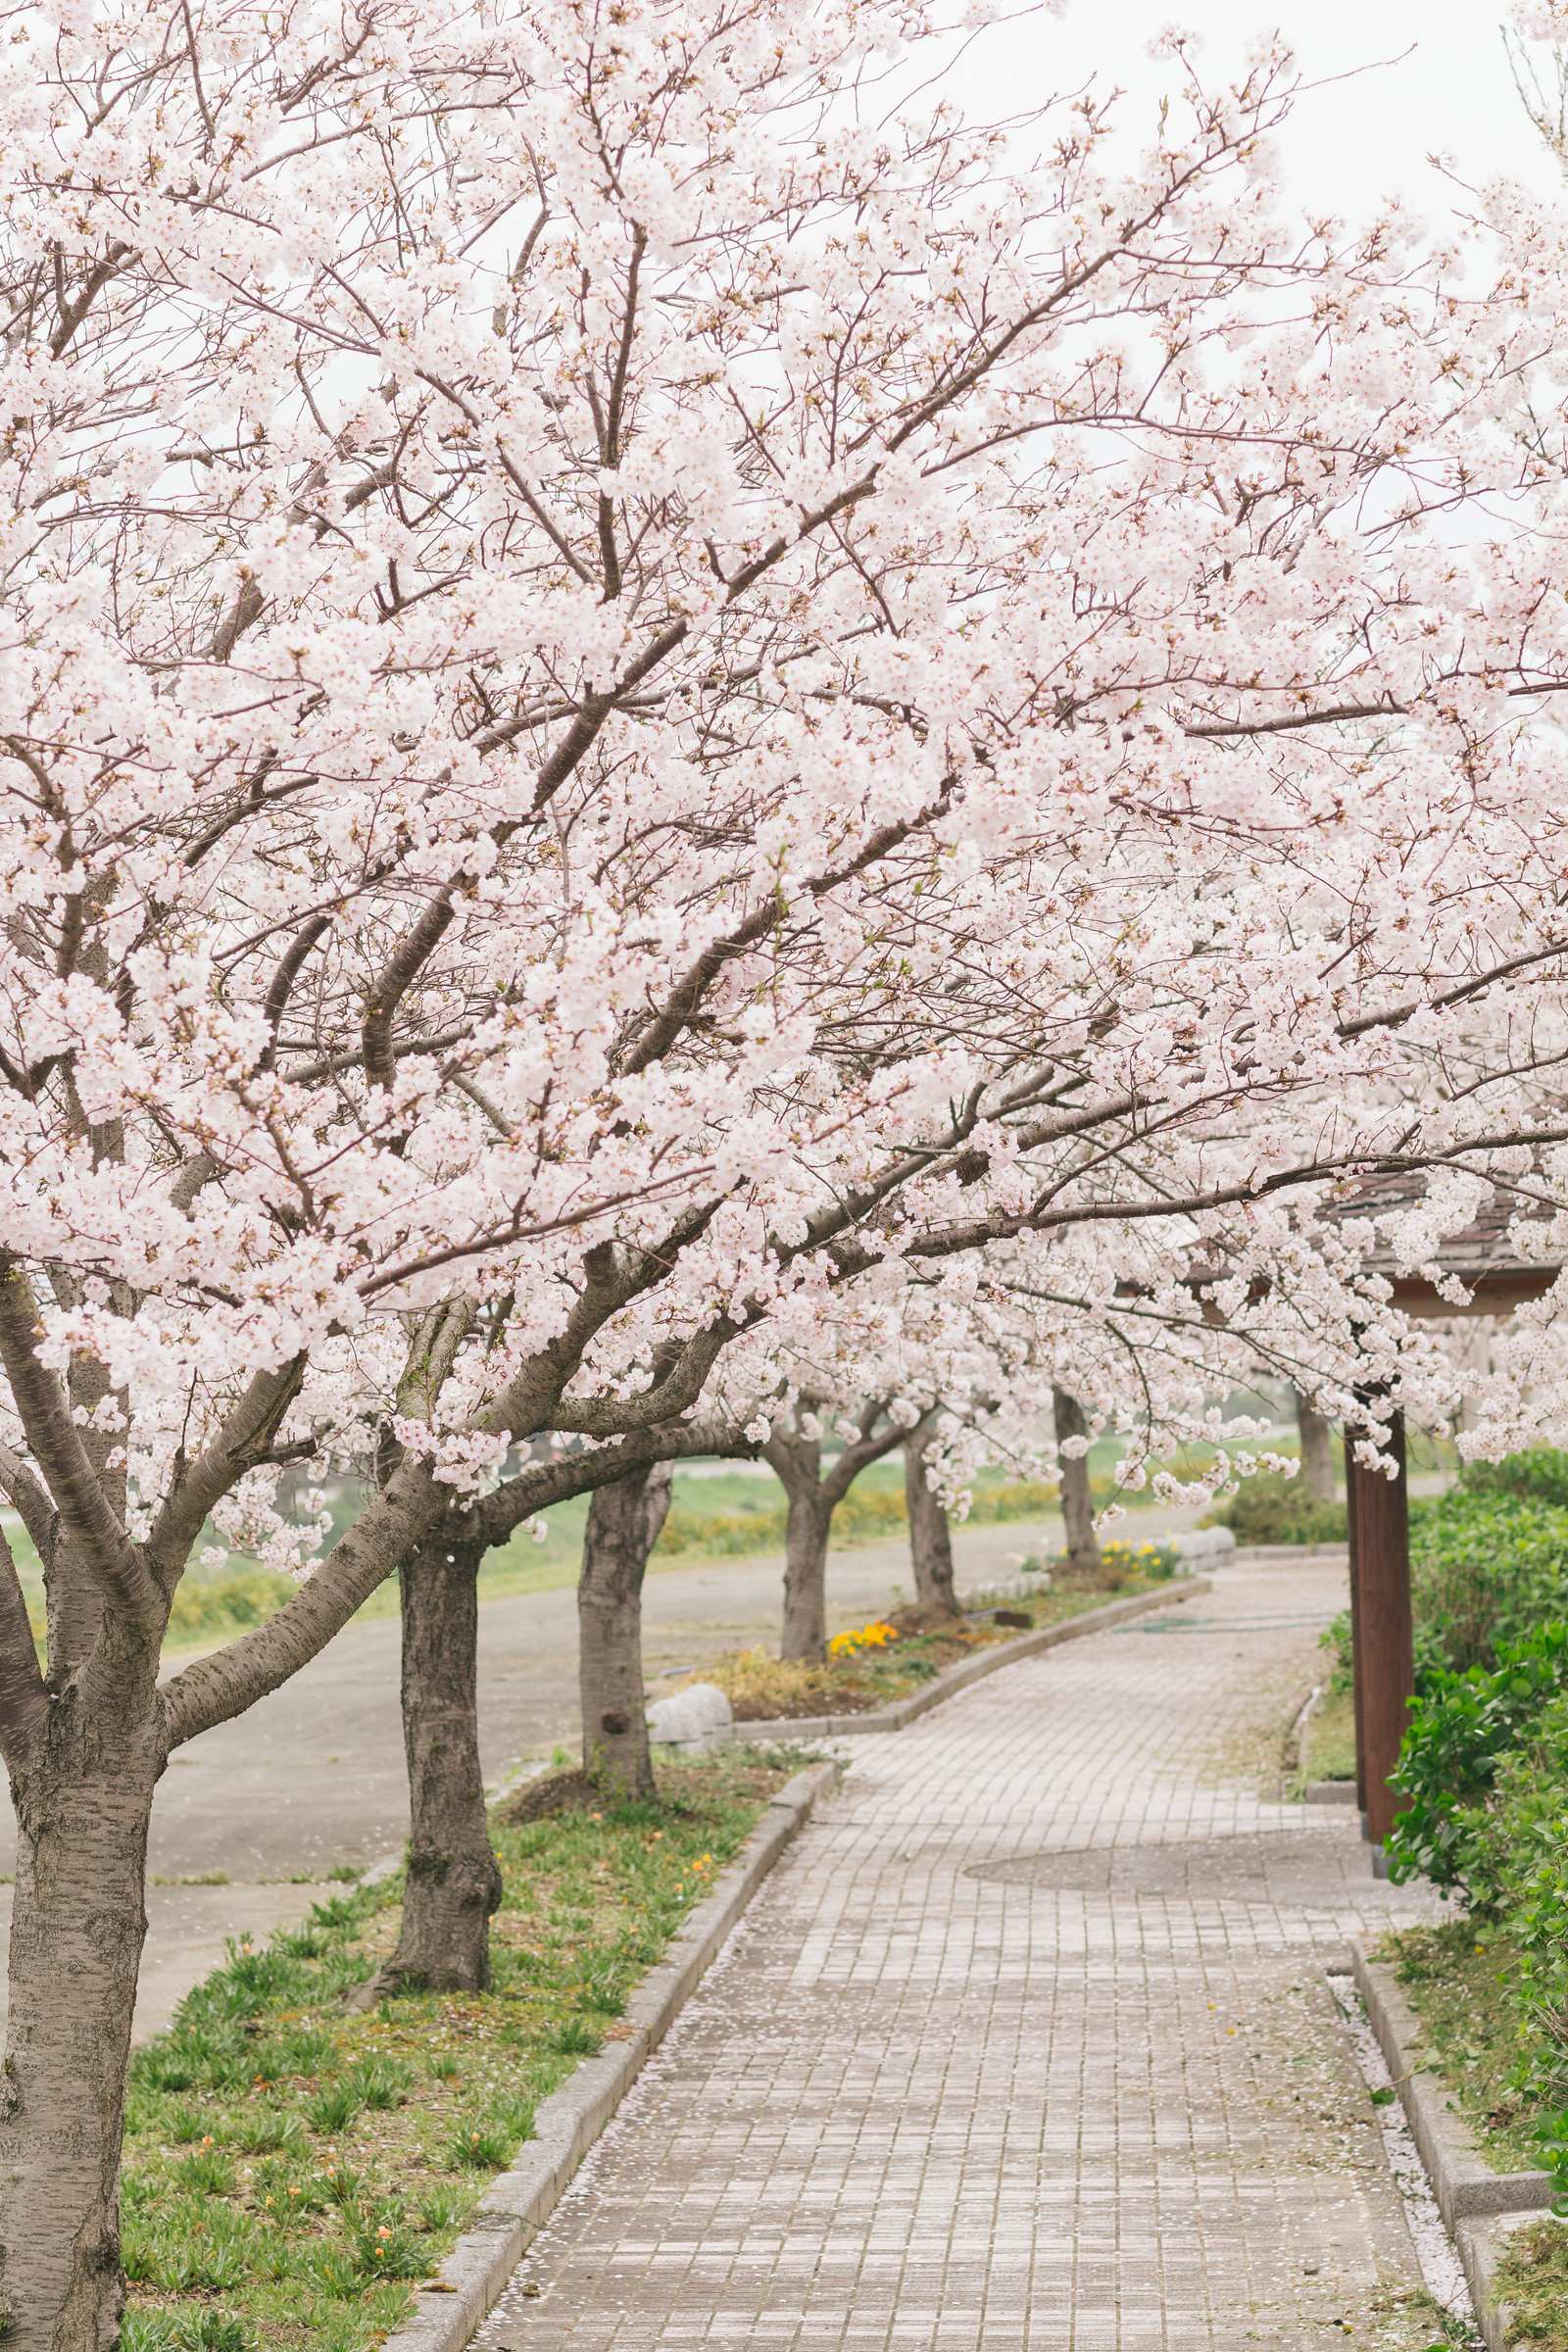 WALKING THROUGH A FIELD OF CHERRY BLOSSOM TREES